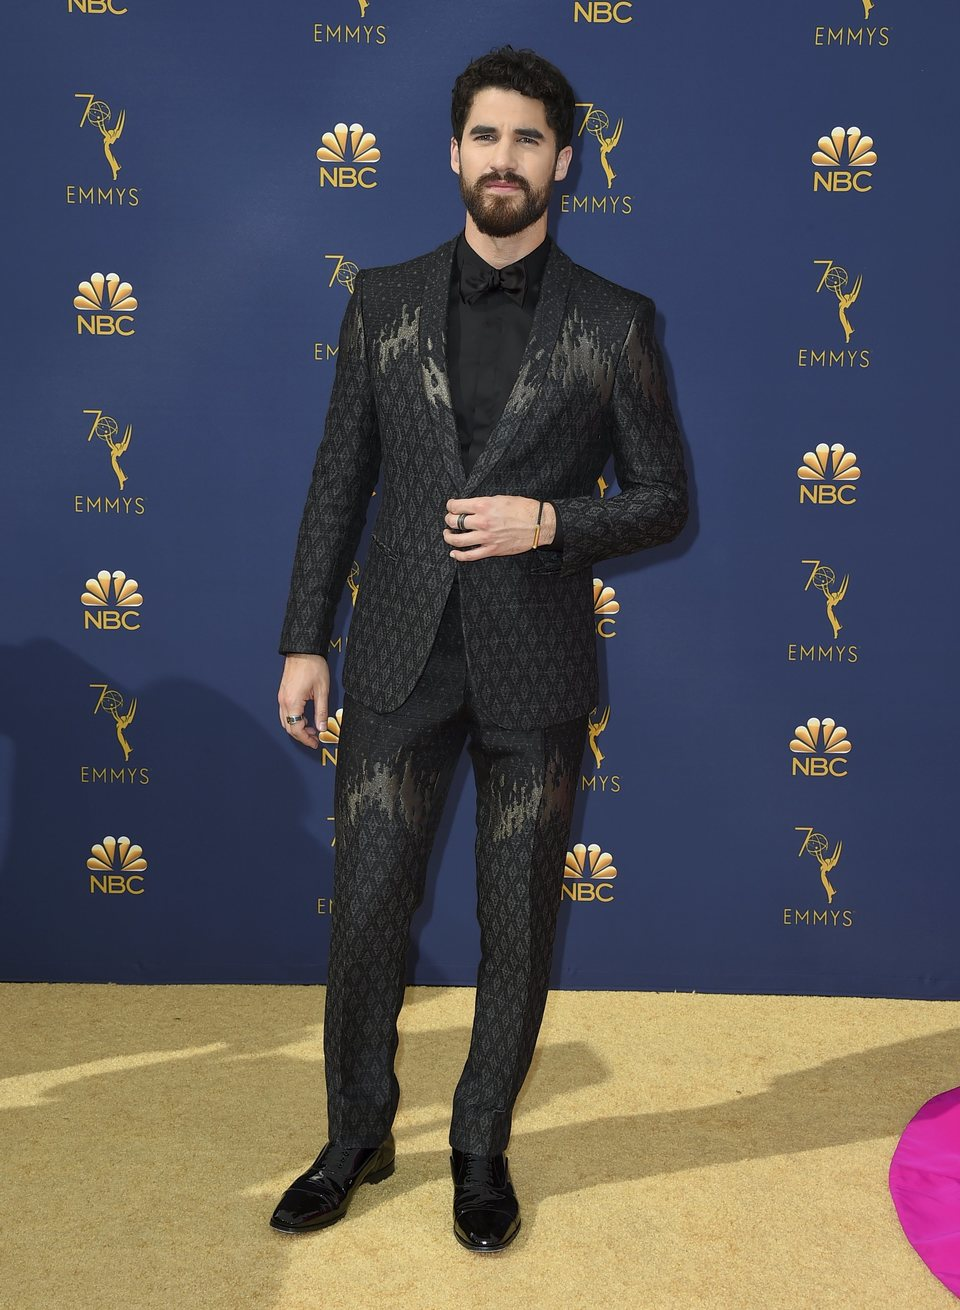 Darren Criss at the Emmys 2018 red carpet